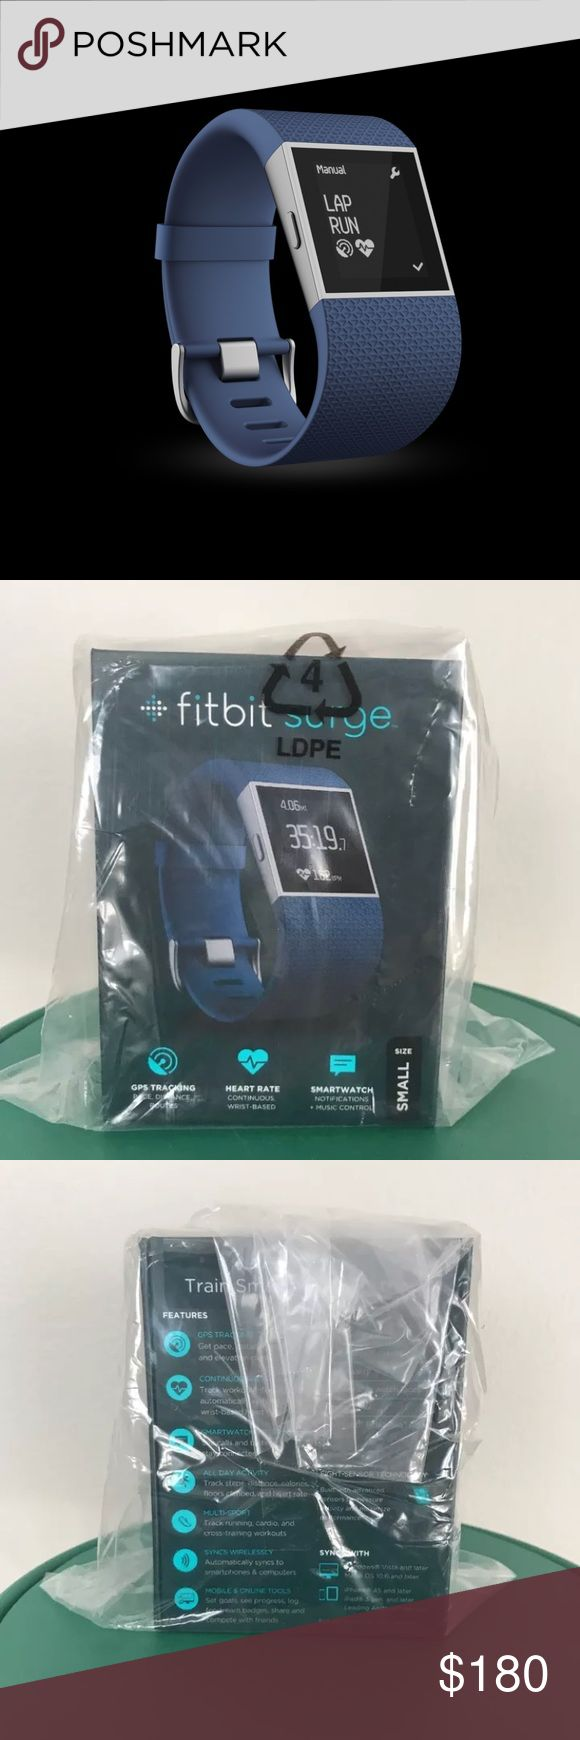 NEW IN BOX Fitbit Surge Navy size Small Never opened, brand new Fitbit Surge. Great for everyday and working out. Has GPS, heartrate, sleep tracking, and many more great features.   Please let me know if you have any questions! Fitbit Other